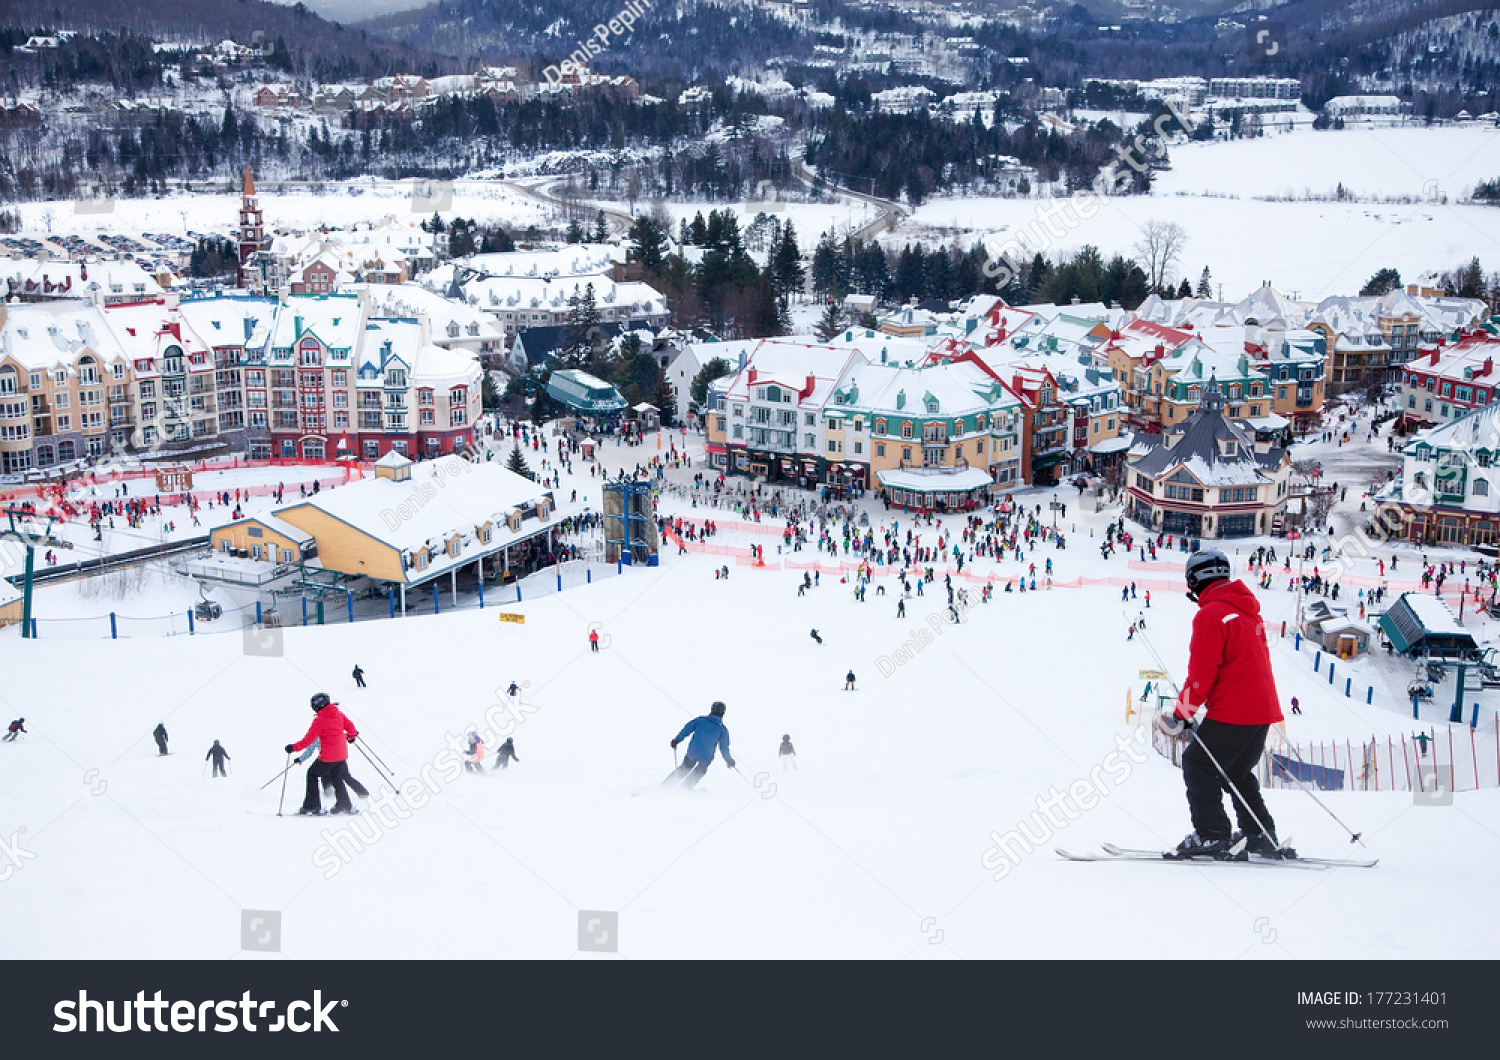 Mont-Tremblant (QC) Canada  city photo : MONT TREMBLANT, QC, CANADA FEBRUARY 9: Skiers and snowboarders are ...